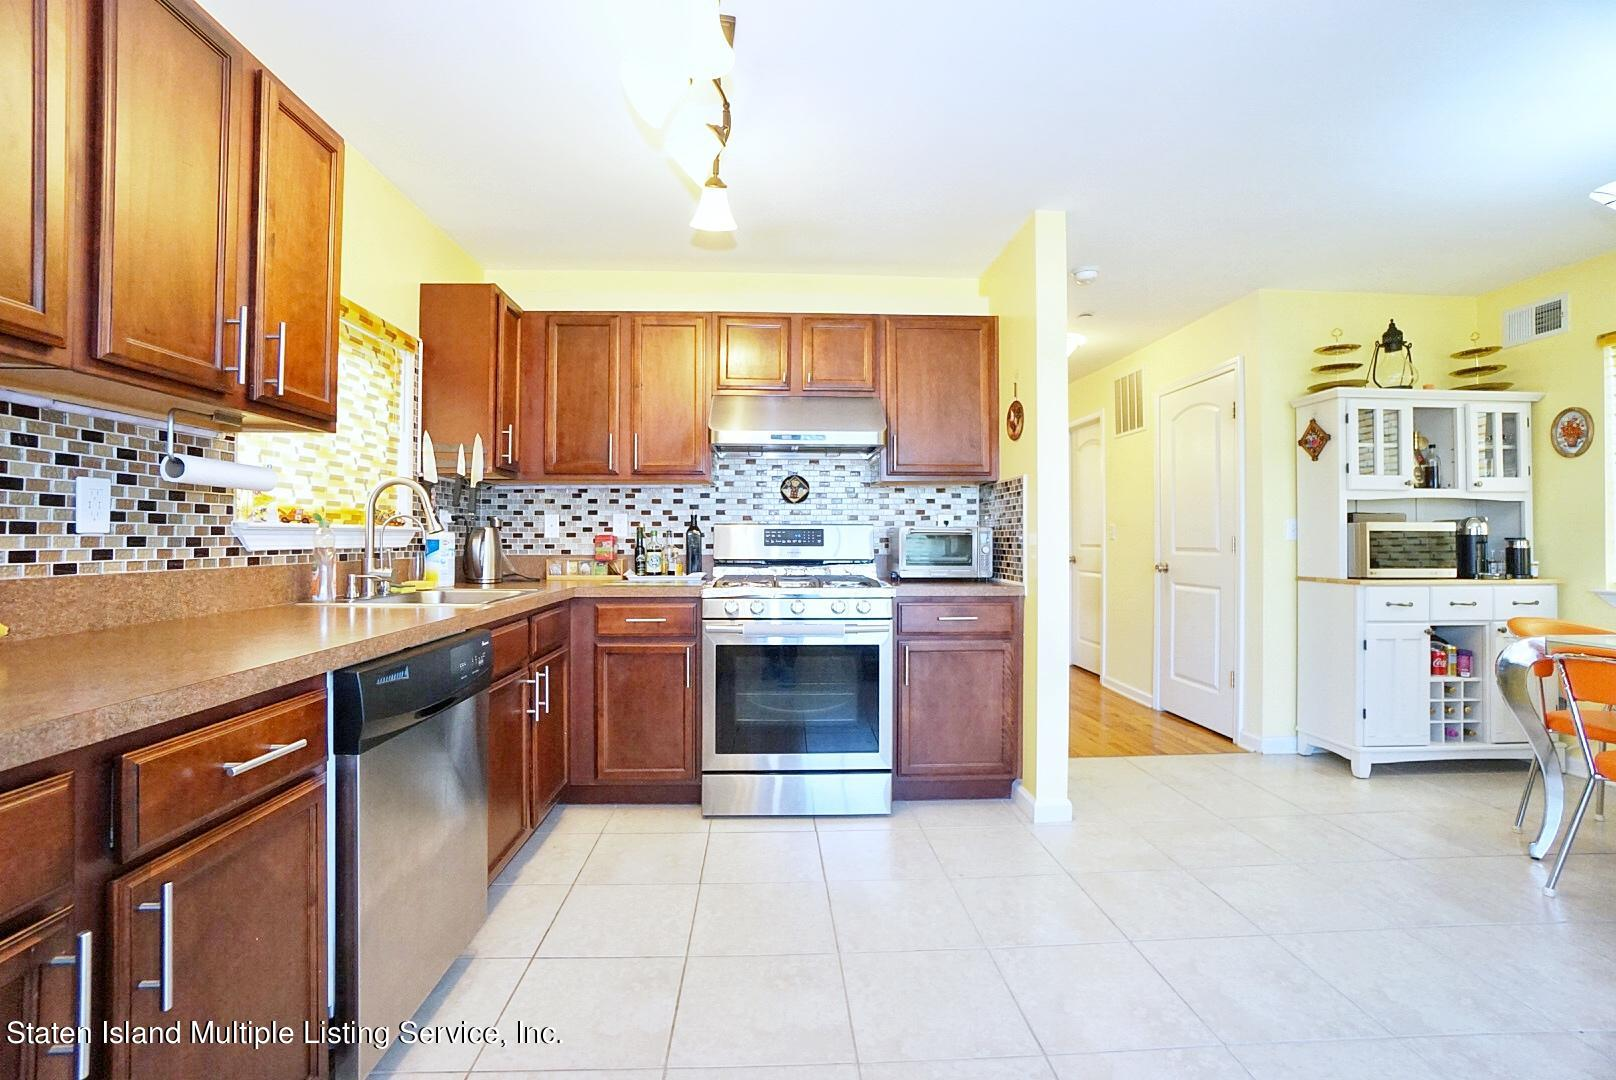 Single Family - Detached 171 Benziger Avenue  Staten Island, NY 10301, MLS-1145235-13